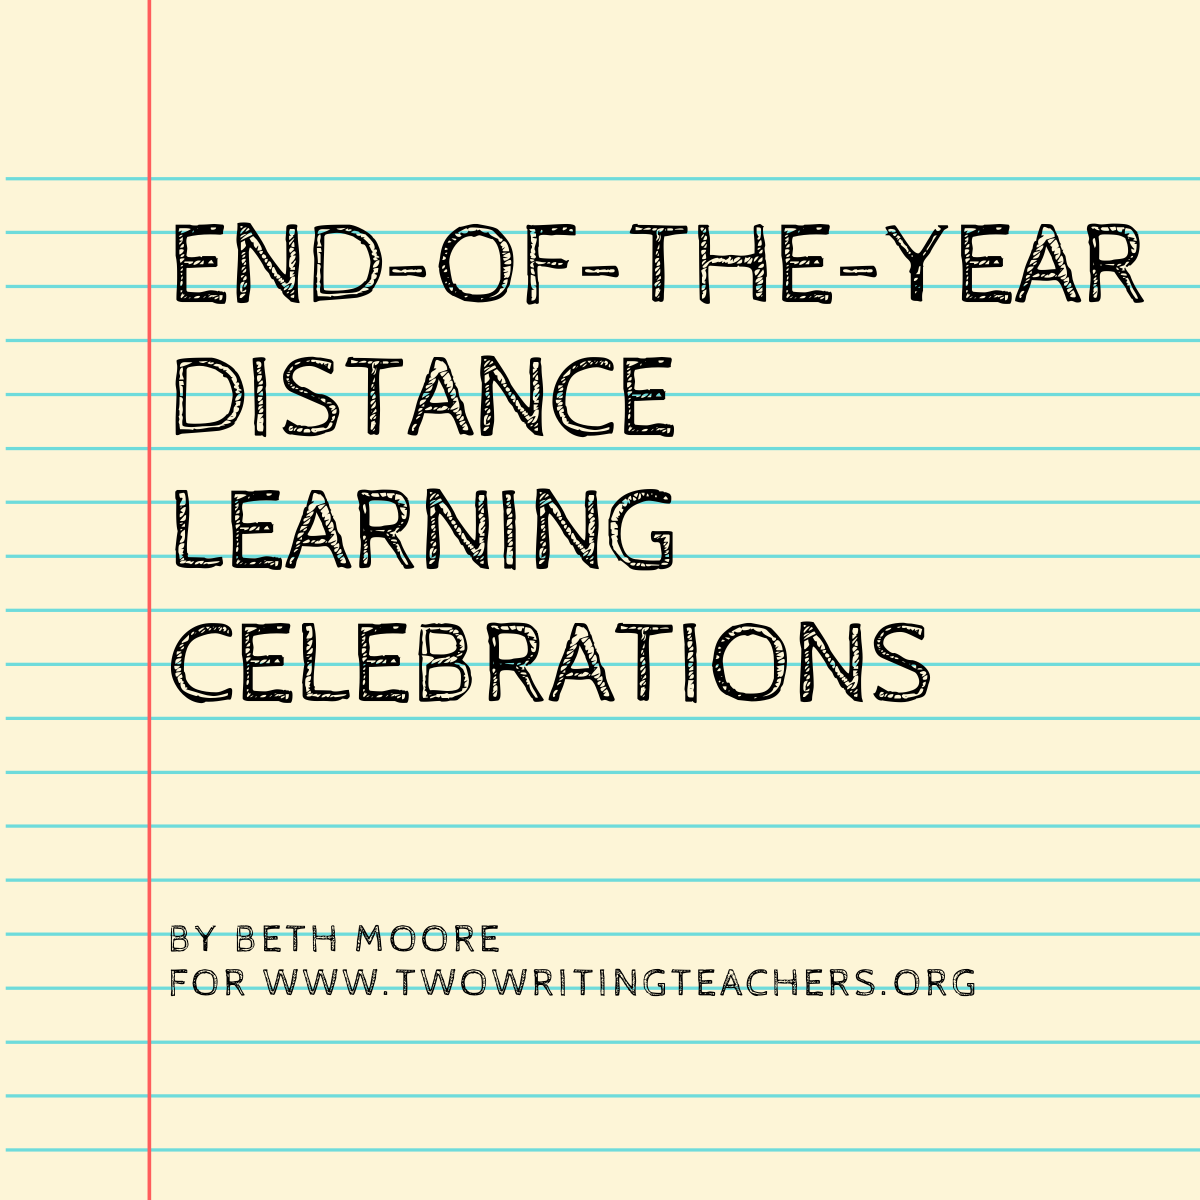 End-of-the-Year Distance Learning Writing Celebrations